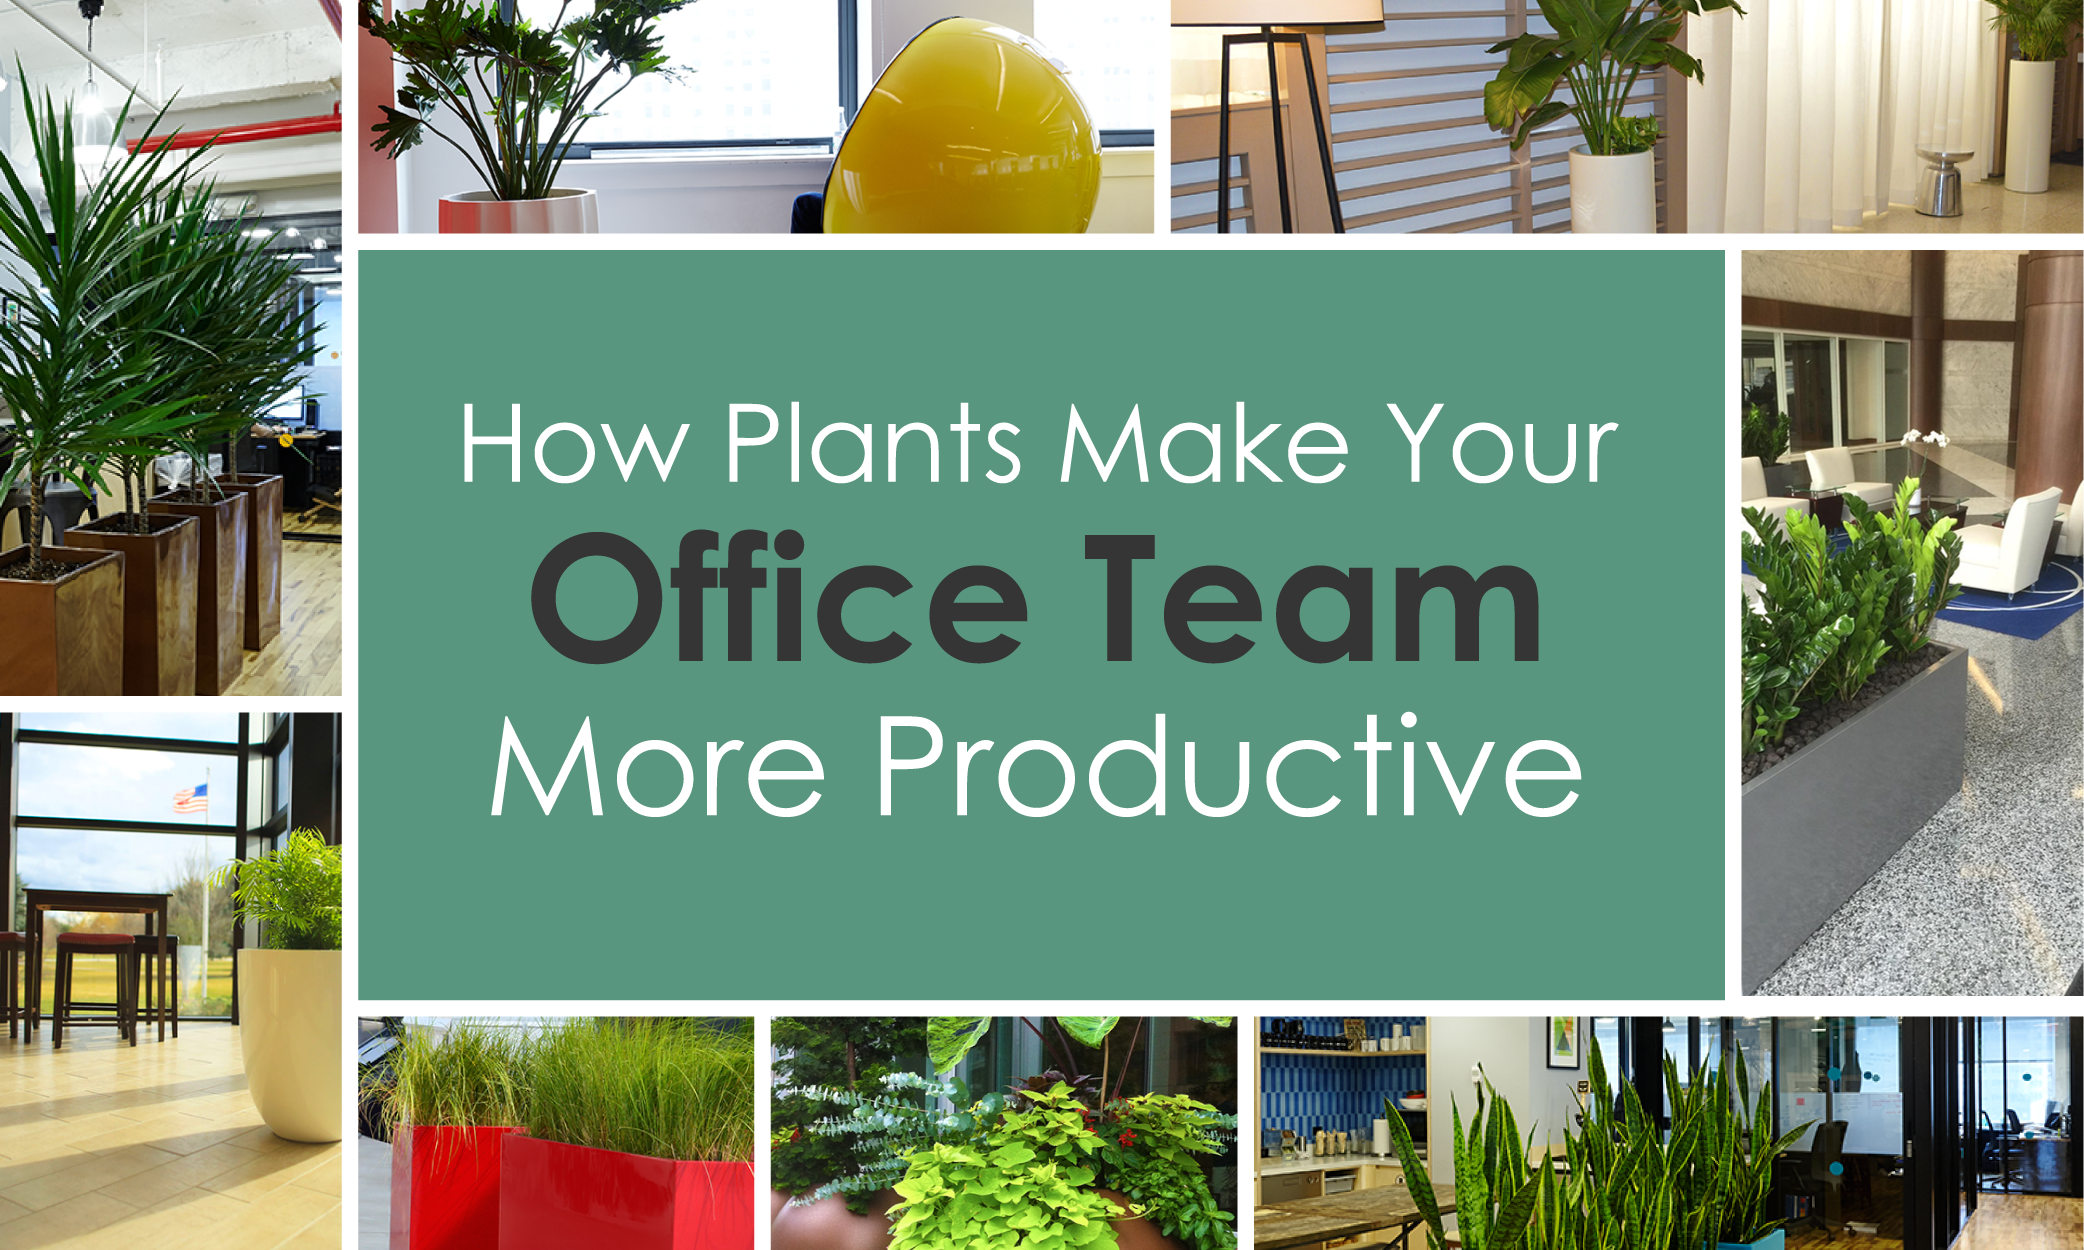 Plants Make Your Office Team More Productive